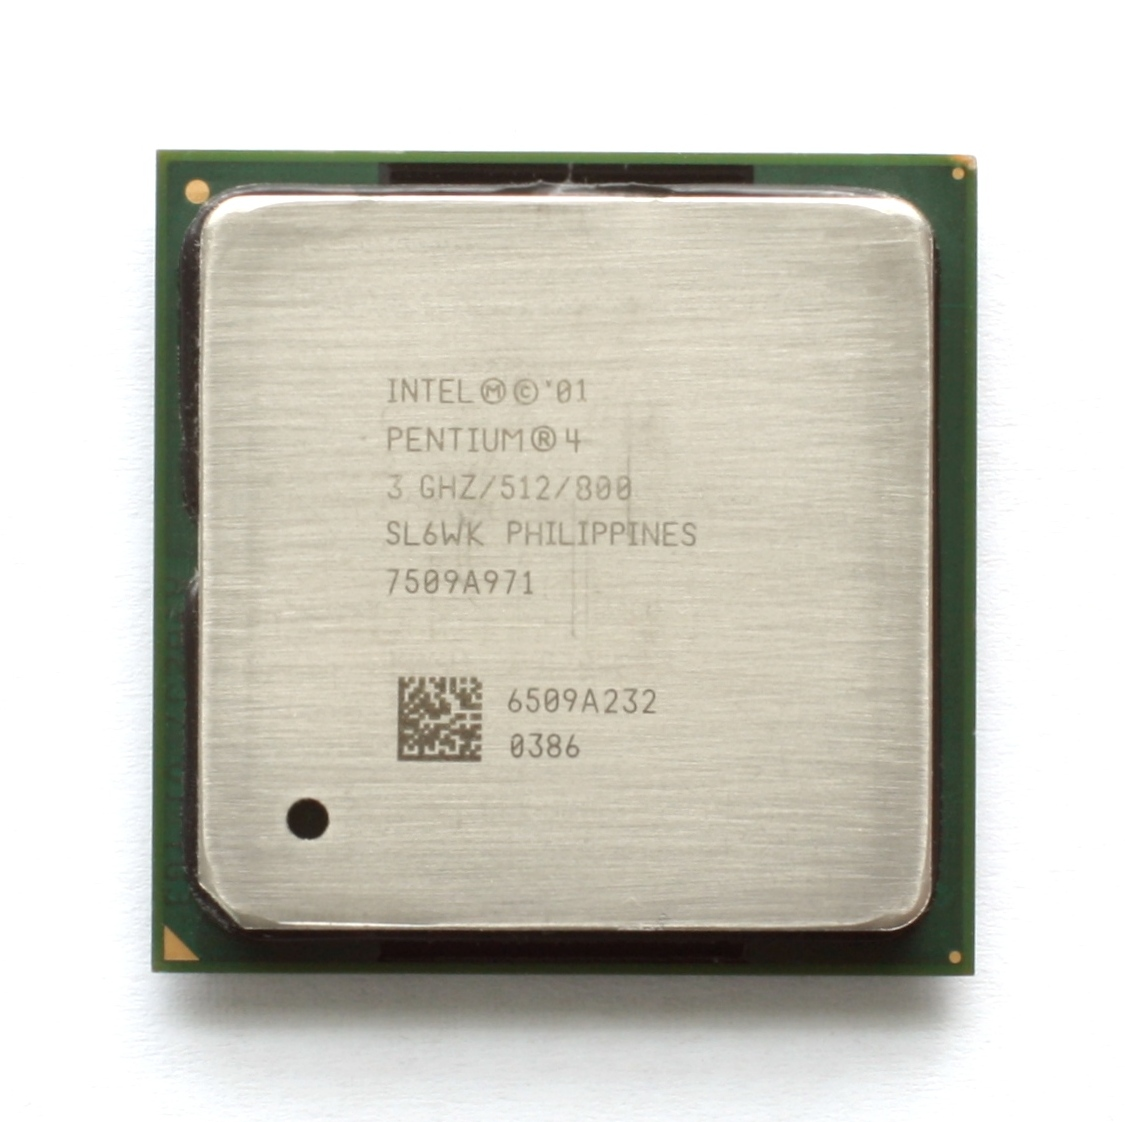 http://upload.wikimedia.org/wikipedia/commons/1/14/KL_Intel_Pentium_4_Northwood.jpg